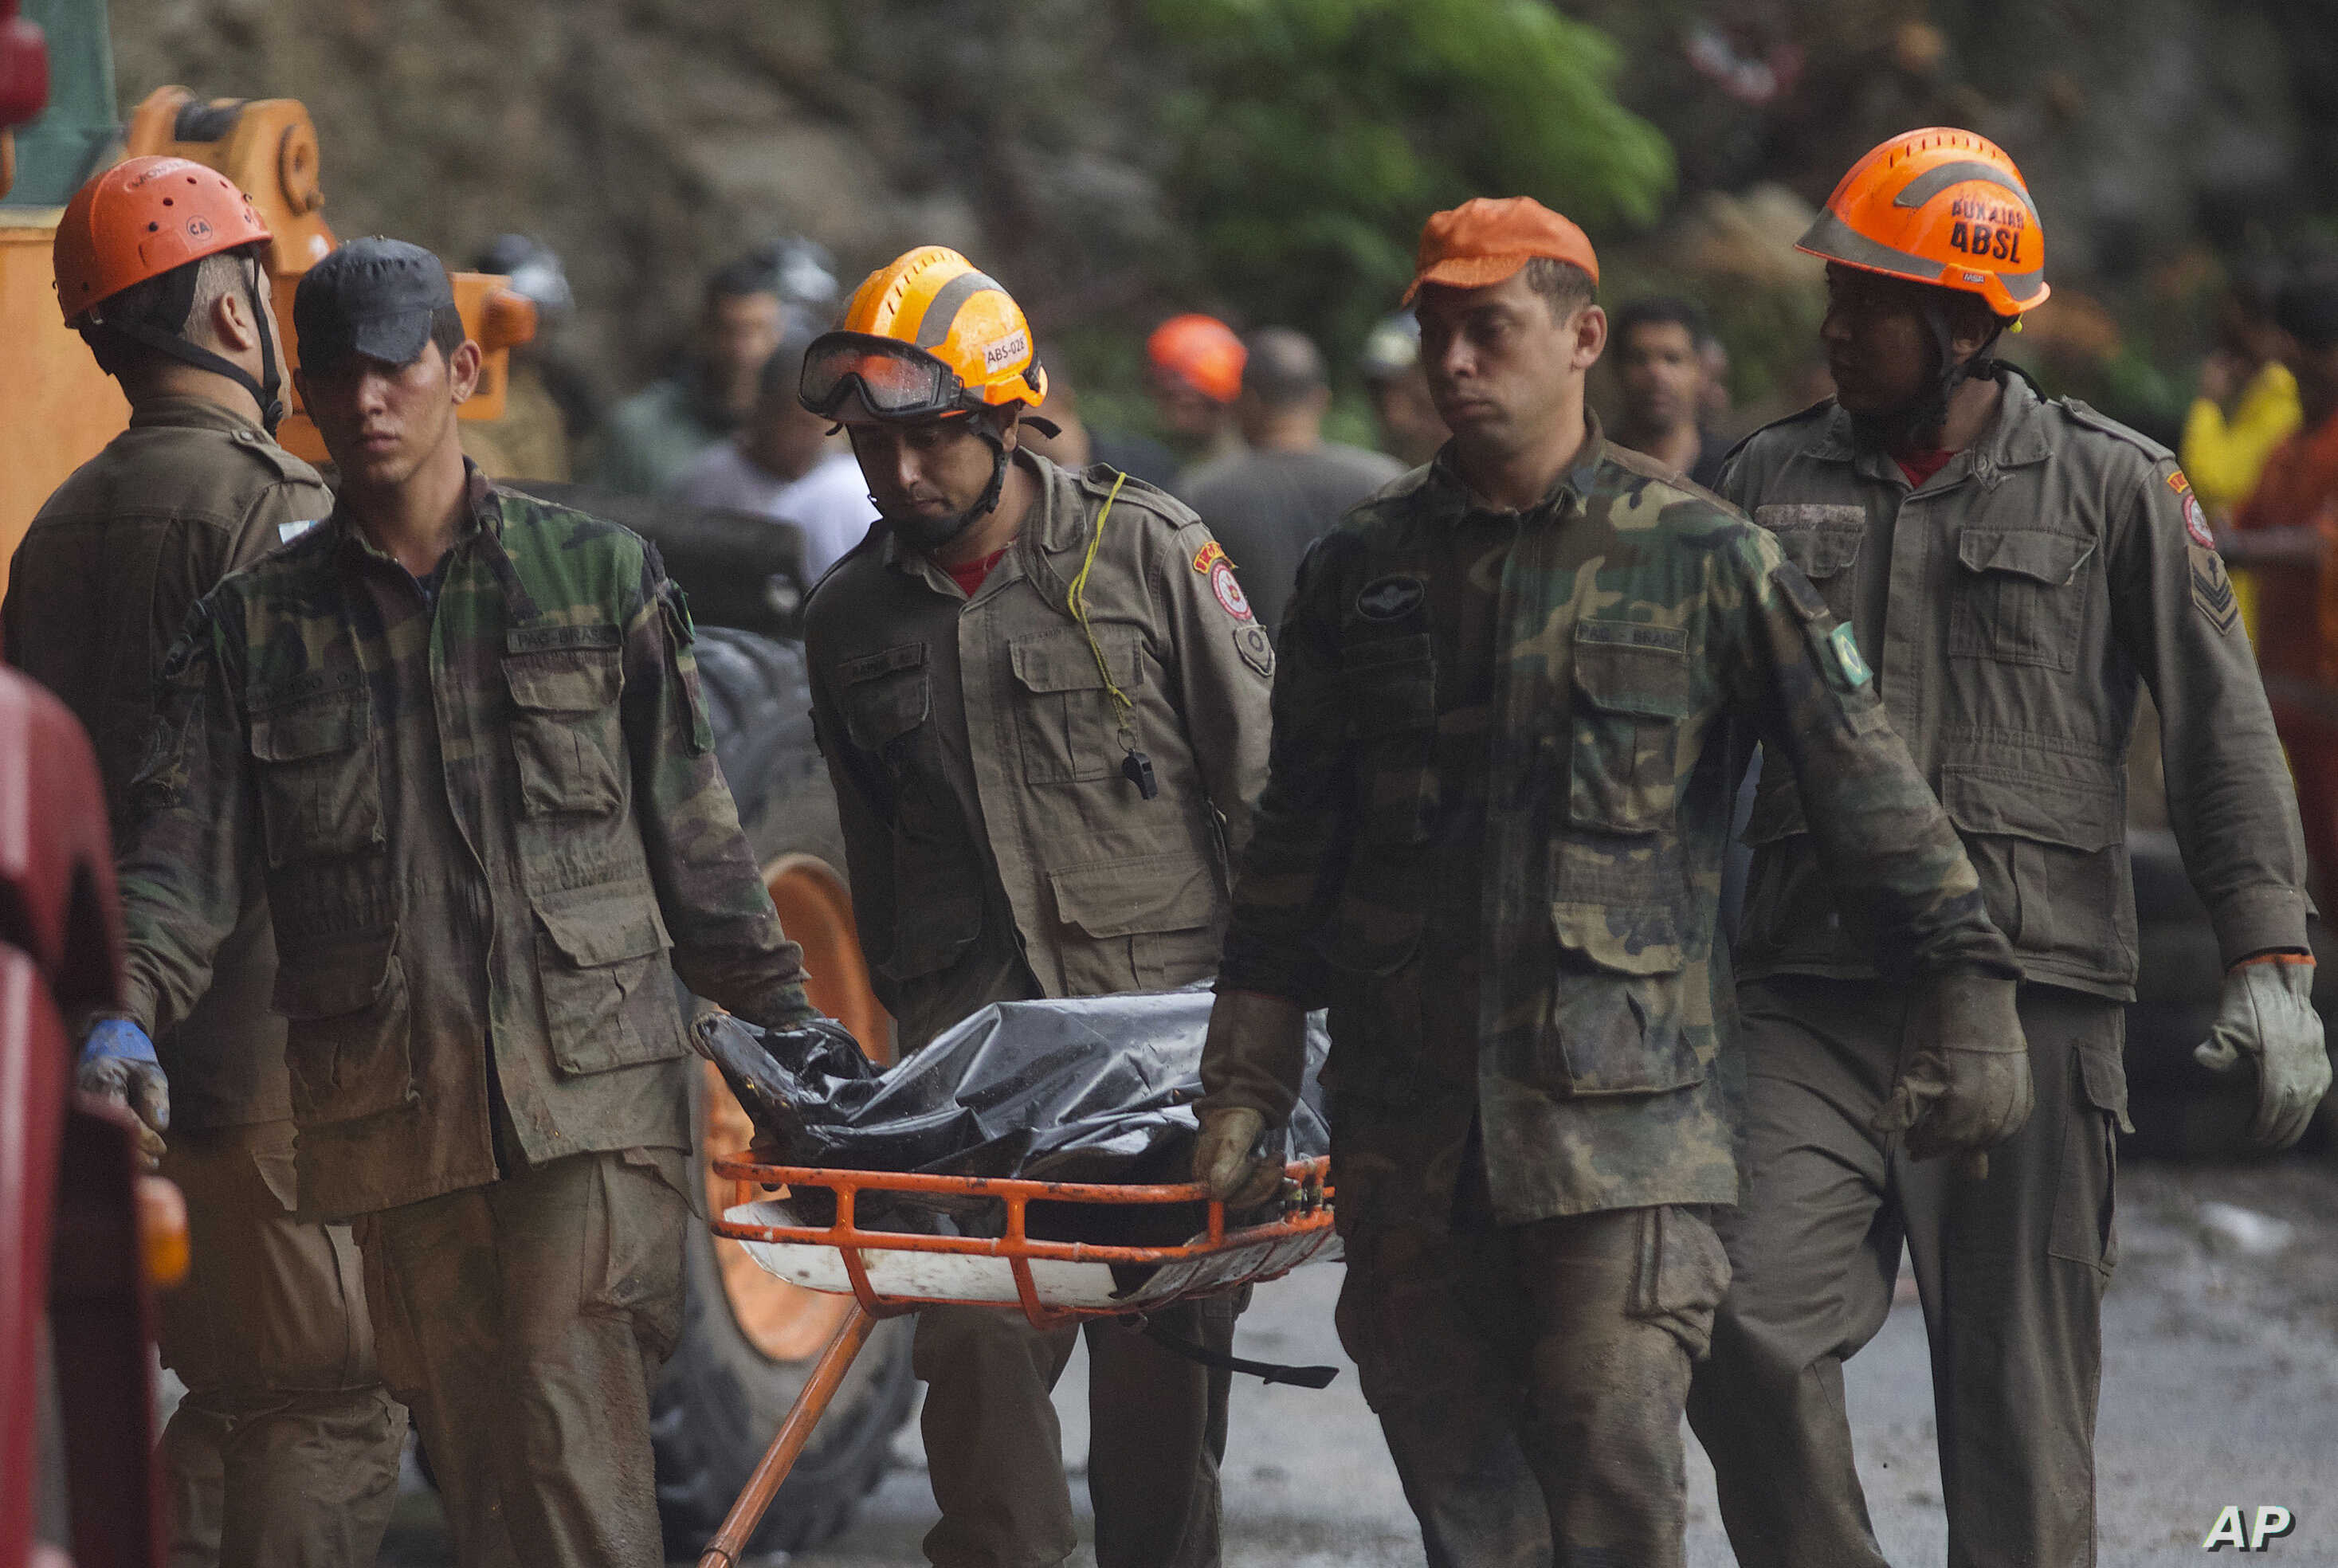 Firefighters and soldiers remove a body recovered from an area where heavy rains caused a mudslide half-burying several vehicles and uprooting trees, in Rio de Janeiro, Brazil, April 9, 2019.